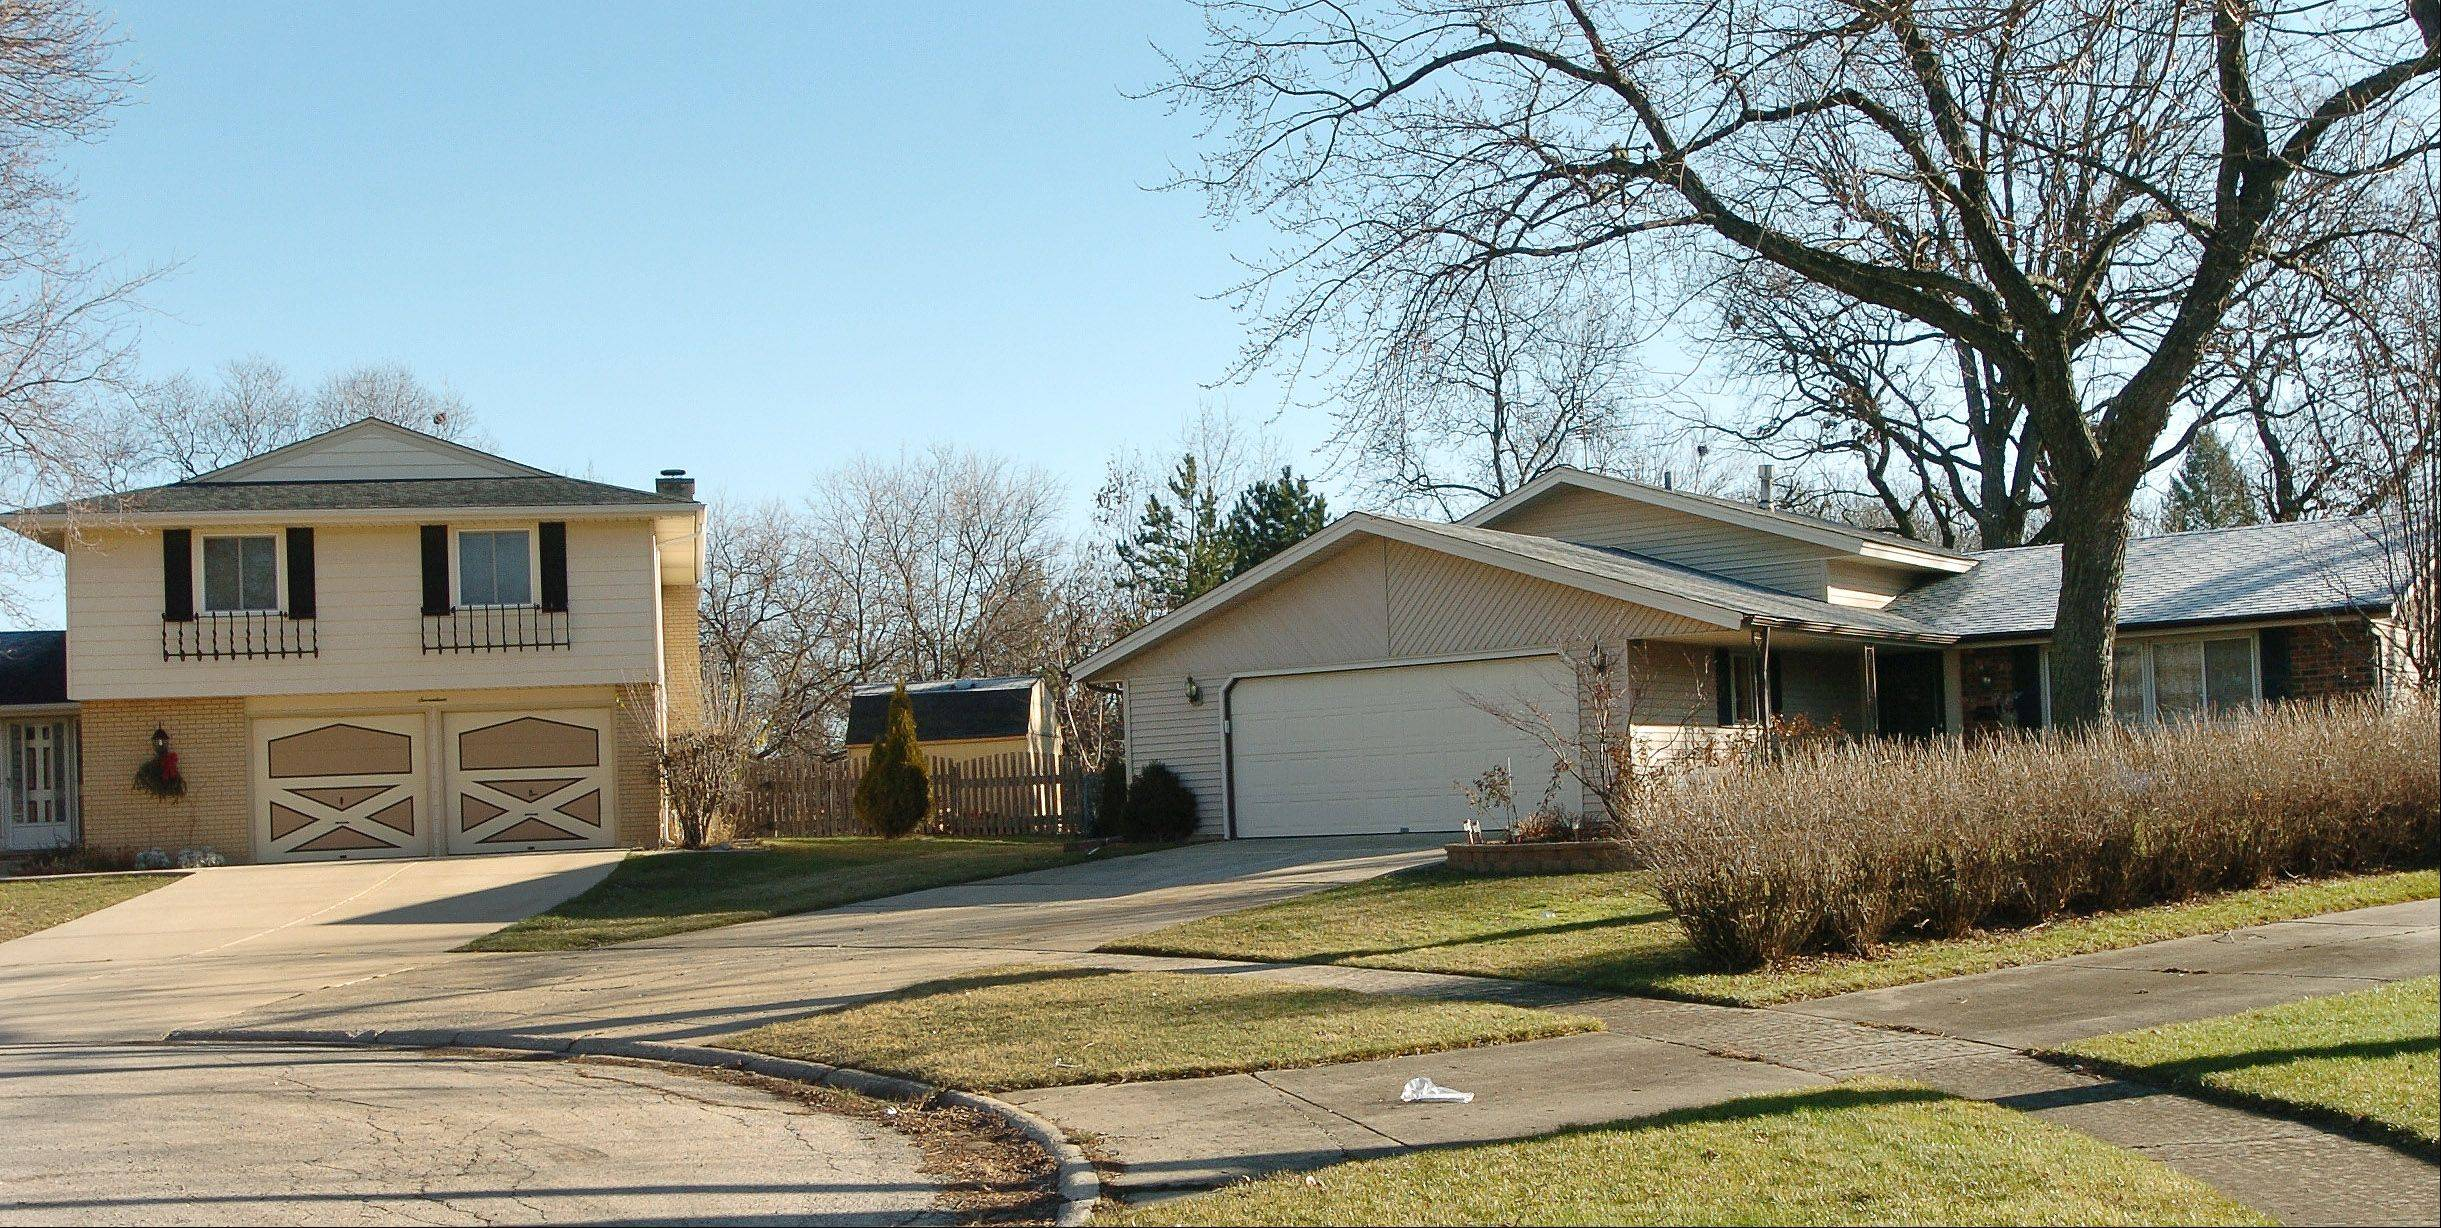 Homes along Tilipi Court in Schaumburg's Weathersfield neighborhood are typical of the area.